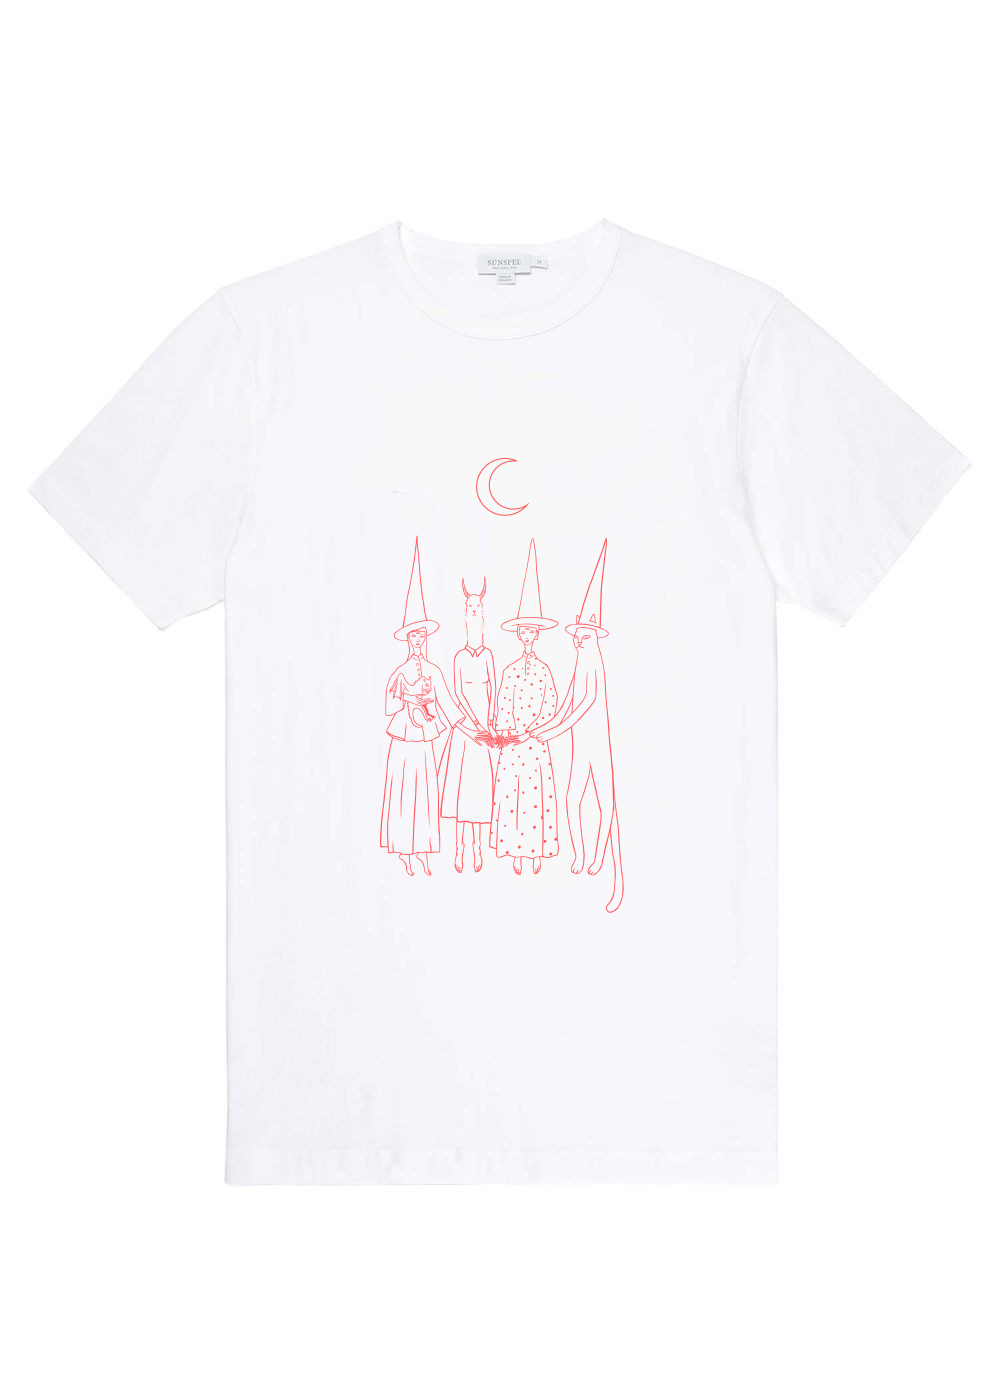 Image of Witches t-shirt